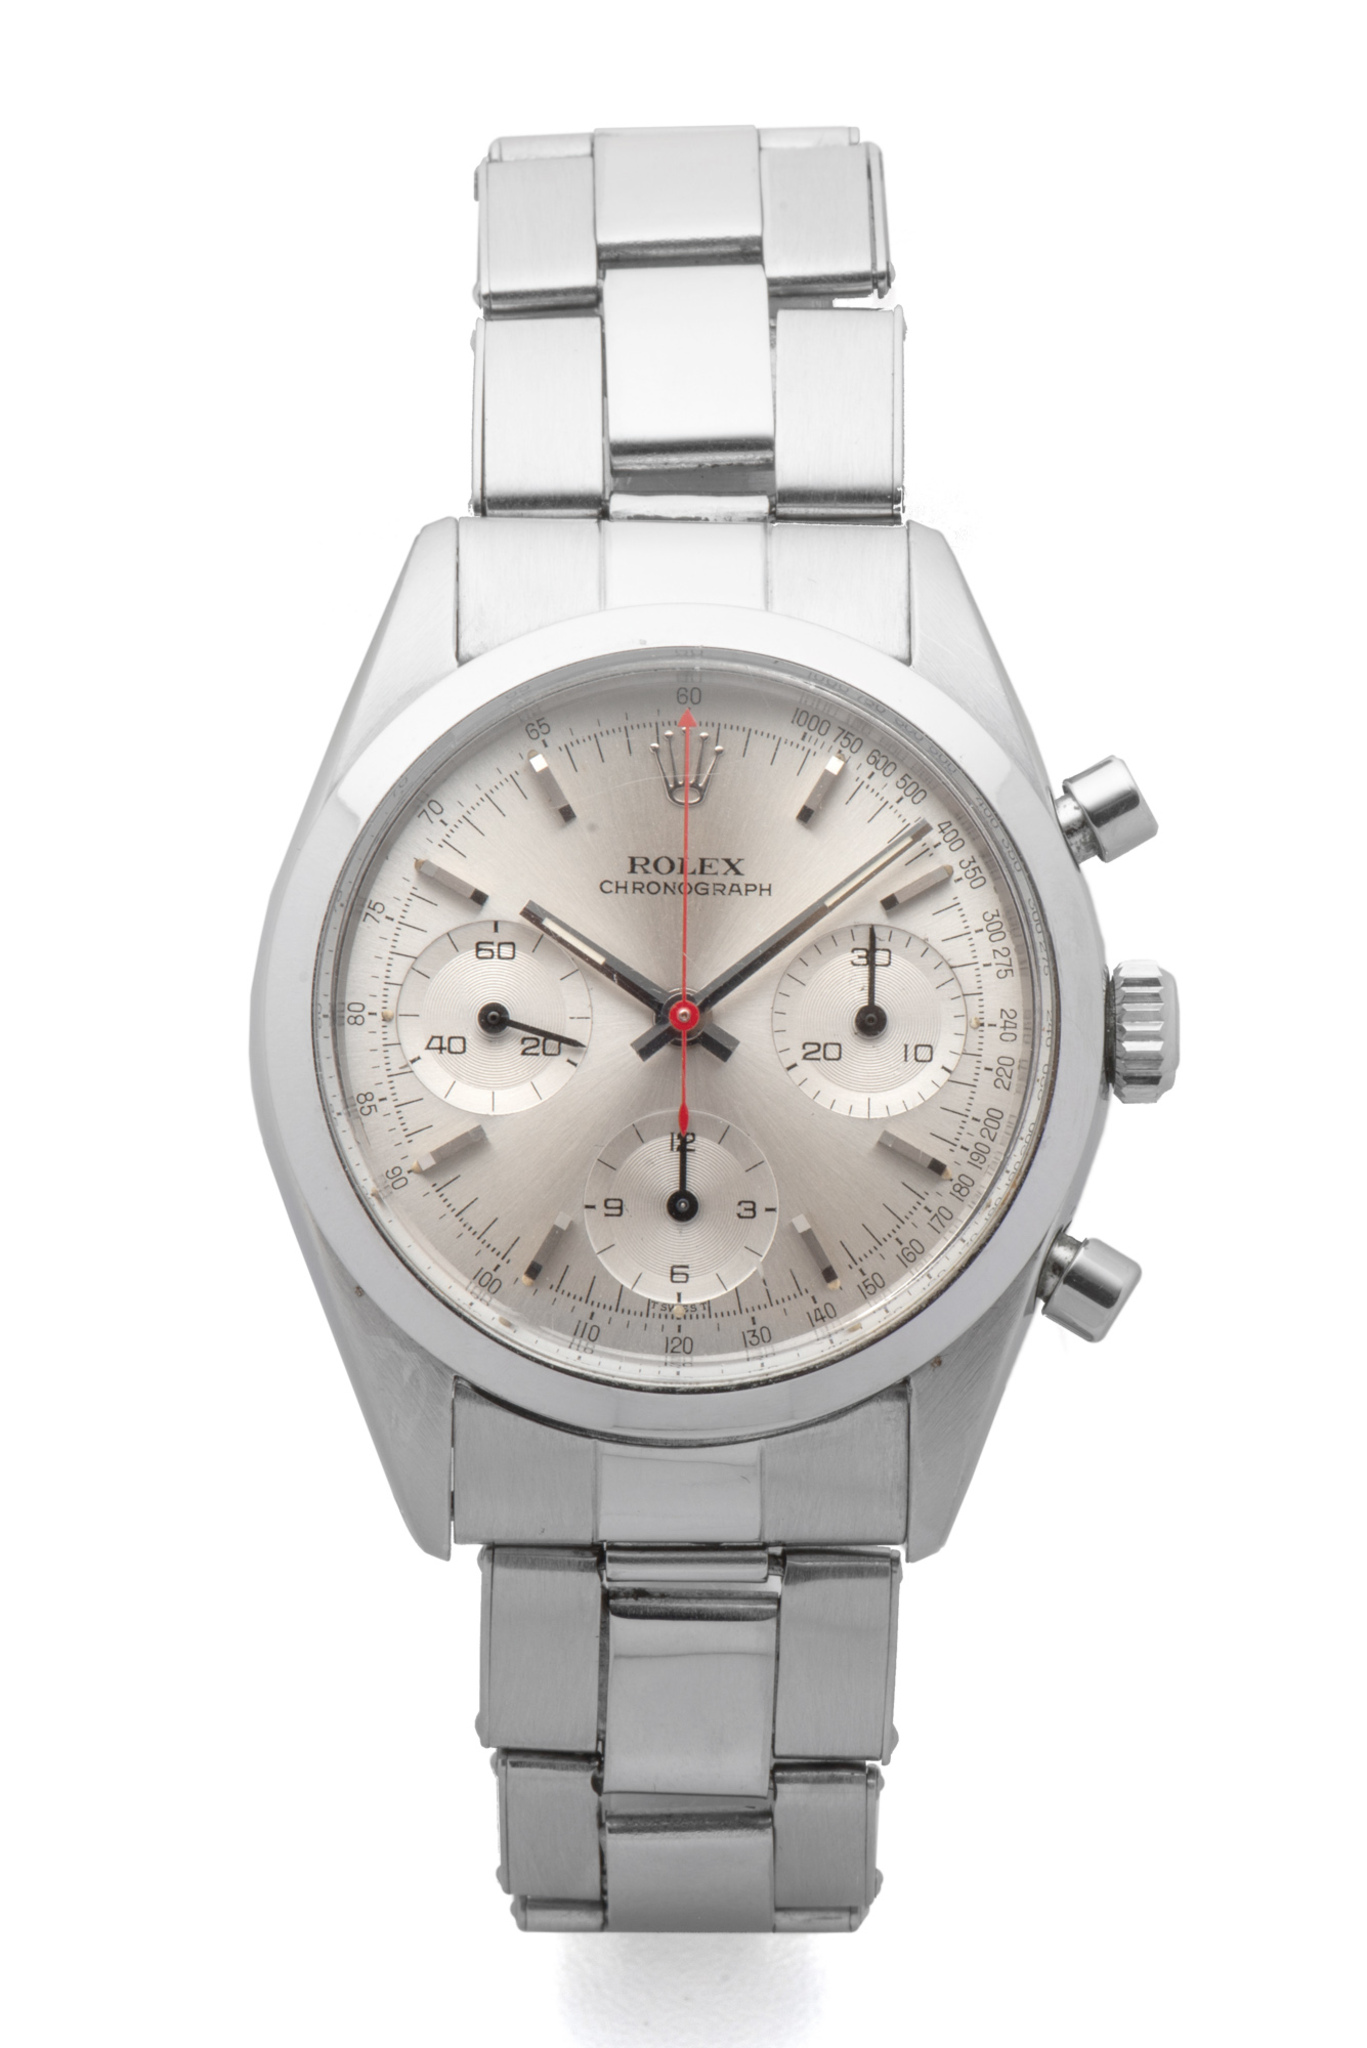 LOT 103 ROLEX, REF. 6238, PRE-DAYTONA, GEORGE LAZENBY « JAMES BOND », STEEL Fine and extremely rare, stainless steel, manual-winding wristwatch with silver dial, three registers and red chronograph hand. Rarissime et superbe chronographe en acier. Boîtier rond. Couronne et fond vissés. Cadran argent avec trois compteurs. Trotteuse centrale du chronographe rouge. Mouvement mécanique manuel. Brand Rolex Reference 6238 Year Circa 1965 Calibre  722 Case No. 1206513 Bracelet  Rolex Oyster riveted stainless steel 7205/06 Dimensions 36 mm Signature Case, dial and movement Accessories Original invoice from Bucherer, Christie's London sale purchase invoice, Bijoux Signés Ltd. purchase invoice, black and white picture of a scene of the motion picture with Caterina Von Shell and George Lazenby. EUR 300,000 - 500,000